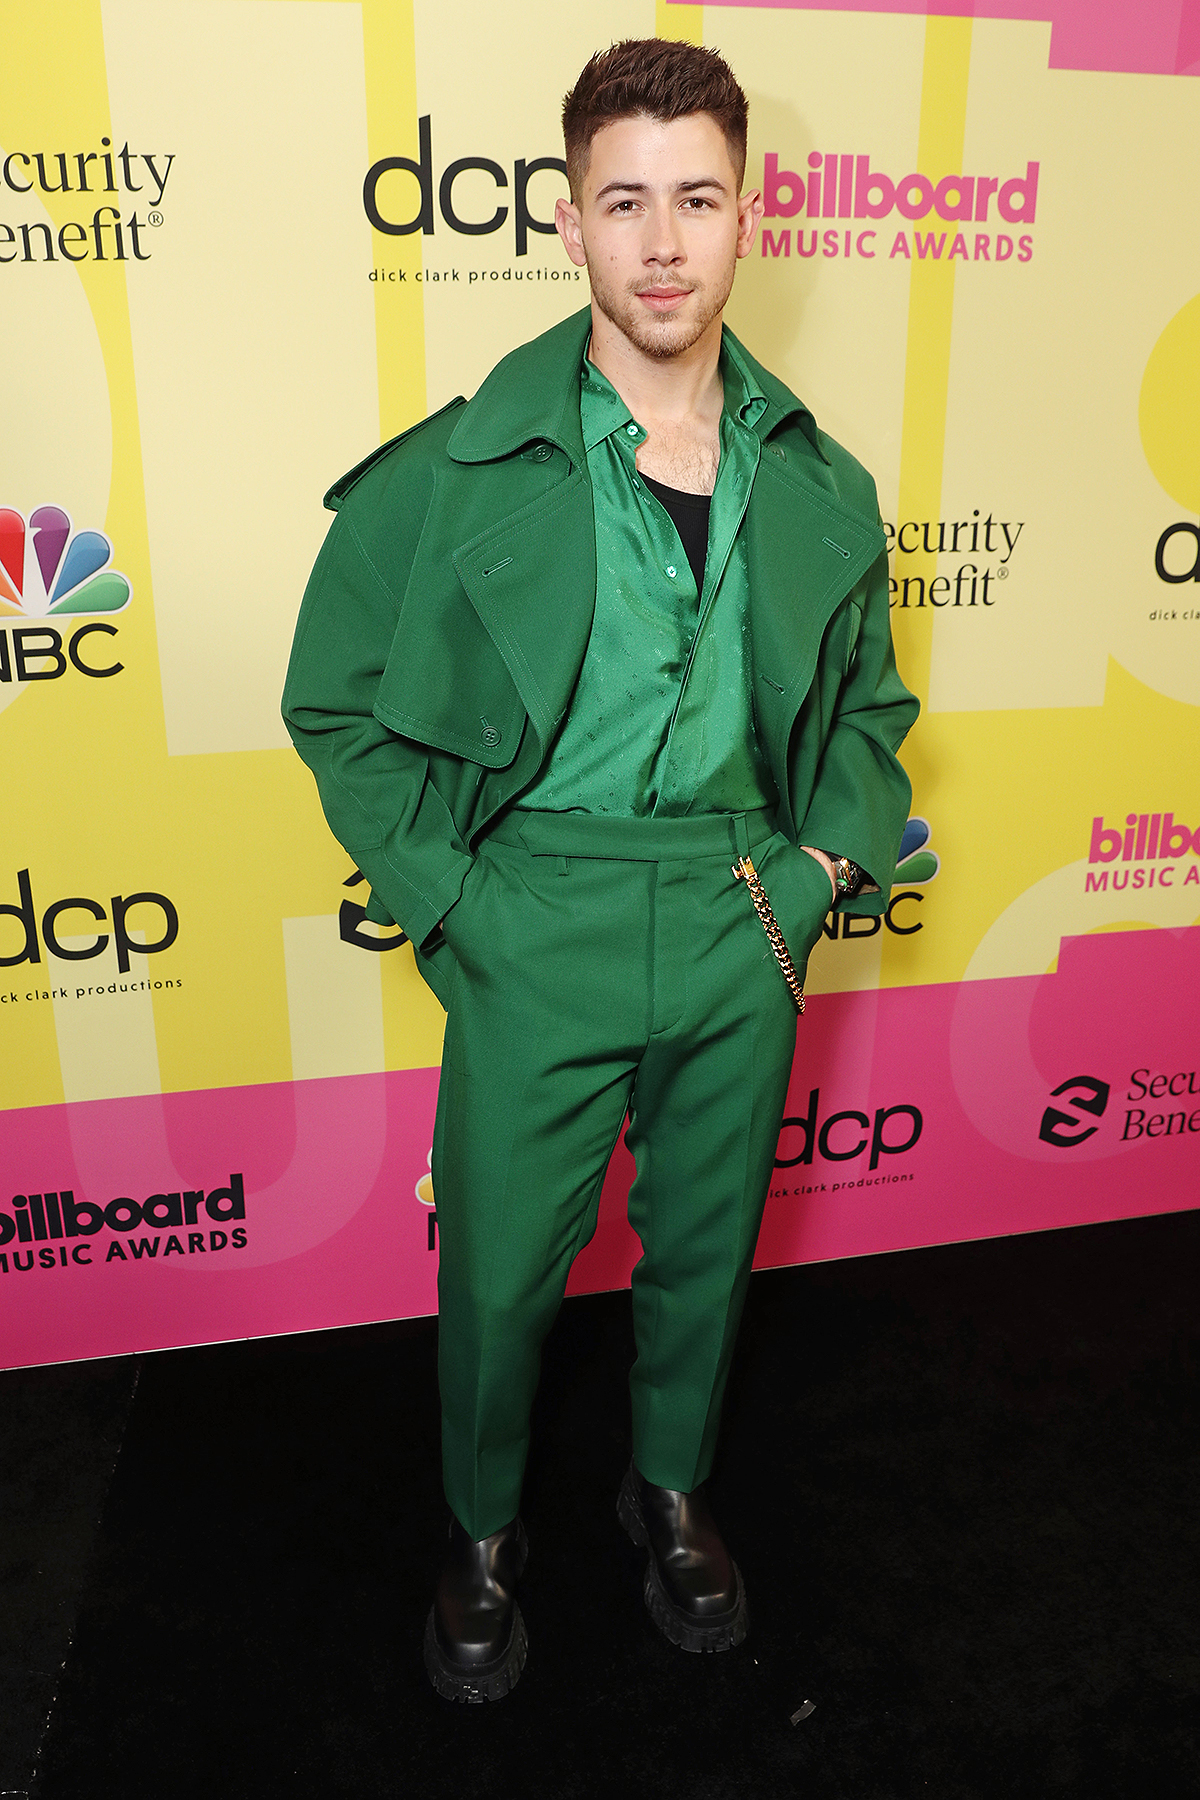 2021 Billboard Music Awards held at the Microsoft Theater on May 23, 2021